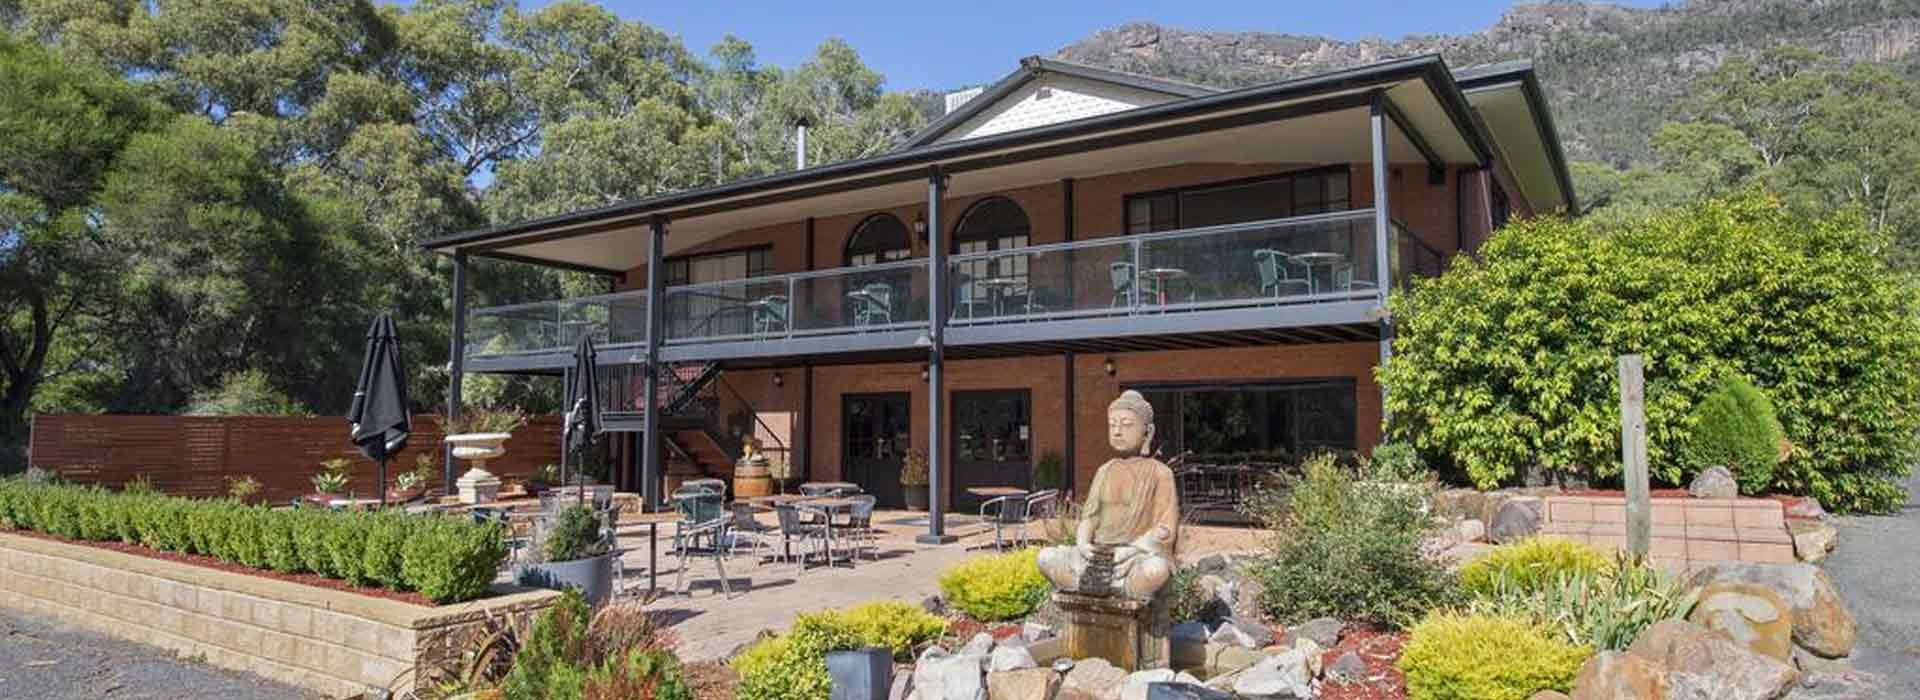 Country Plaza Halls Gap